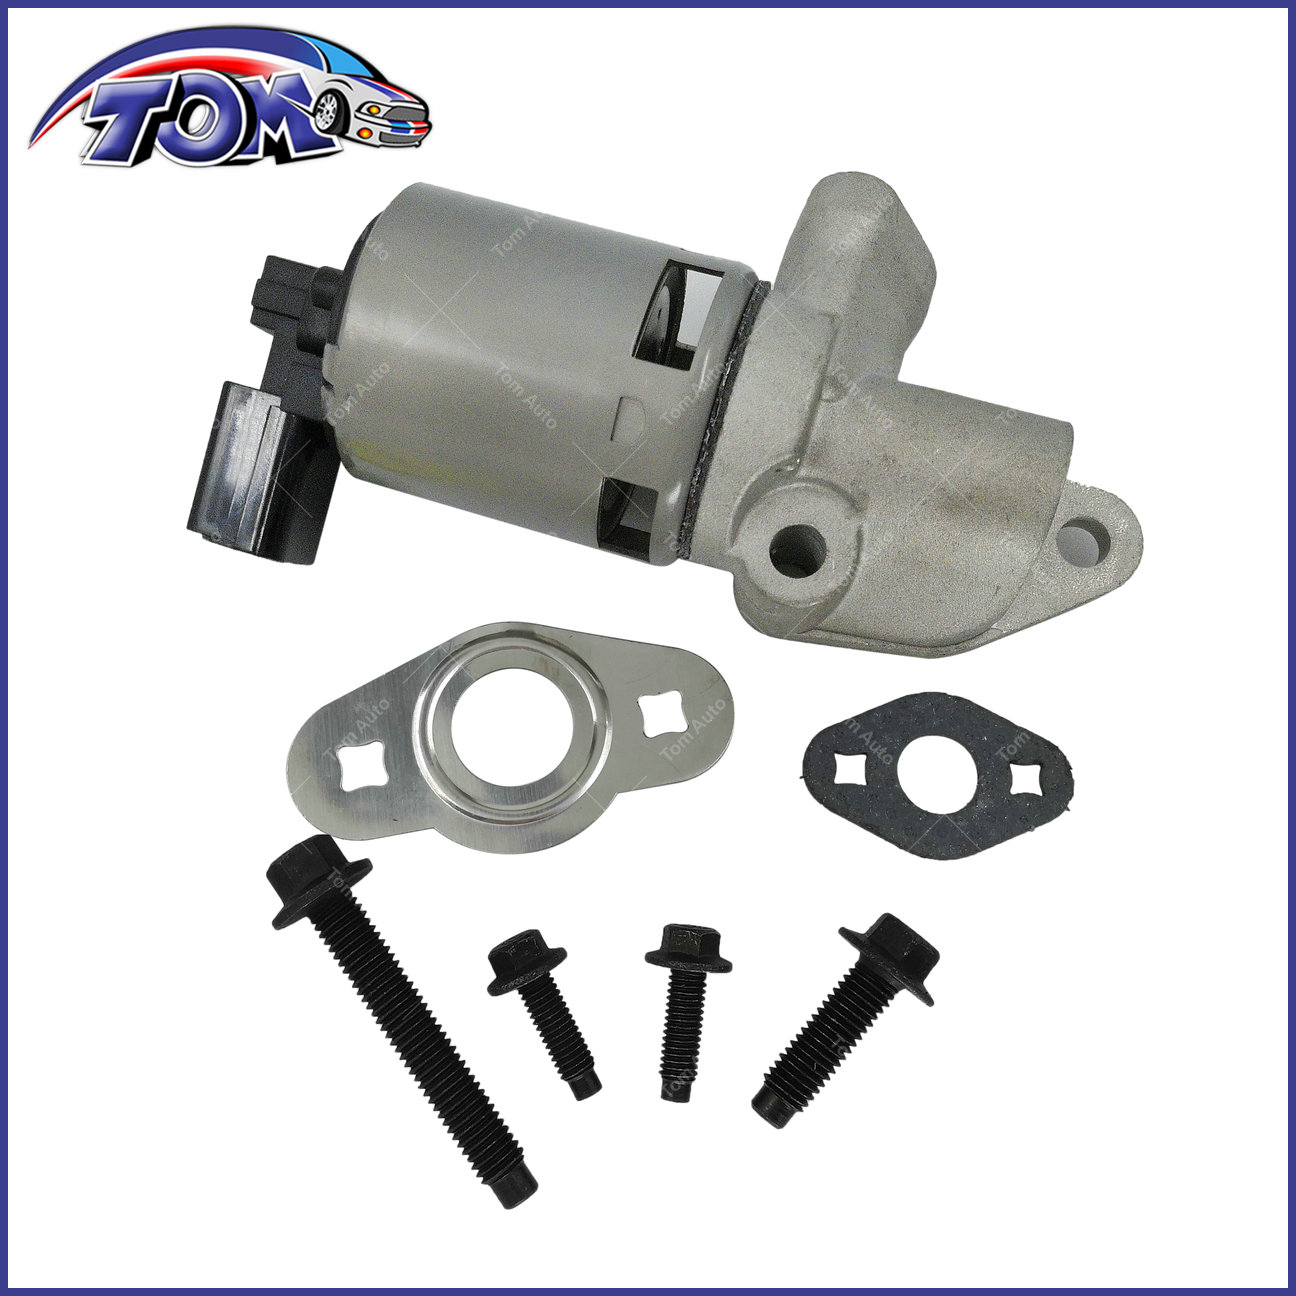 BOXI EGR Exhaust Gas Recirculation Valve Compatible with Jeep Wrangler Chrysl-er Town /& Country VW Routan Dodge Grand Caravan EGR1909 4861674AB